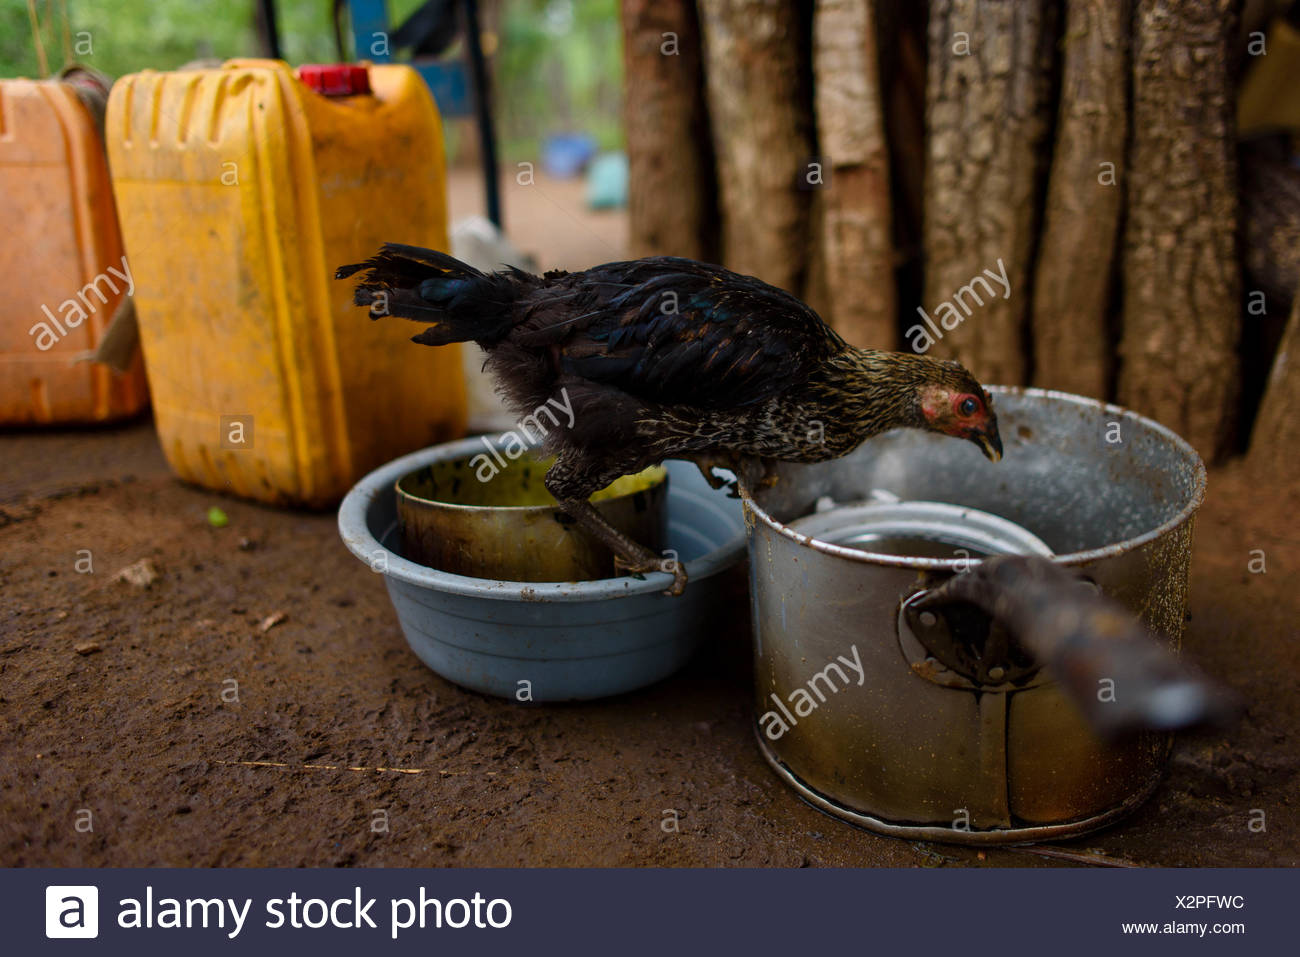 A chicken searches for itself food leftovers - Stock Image